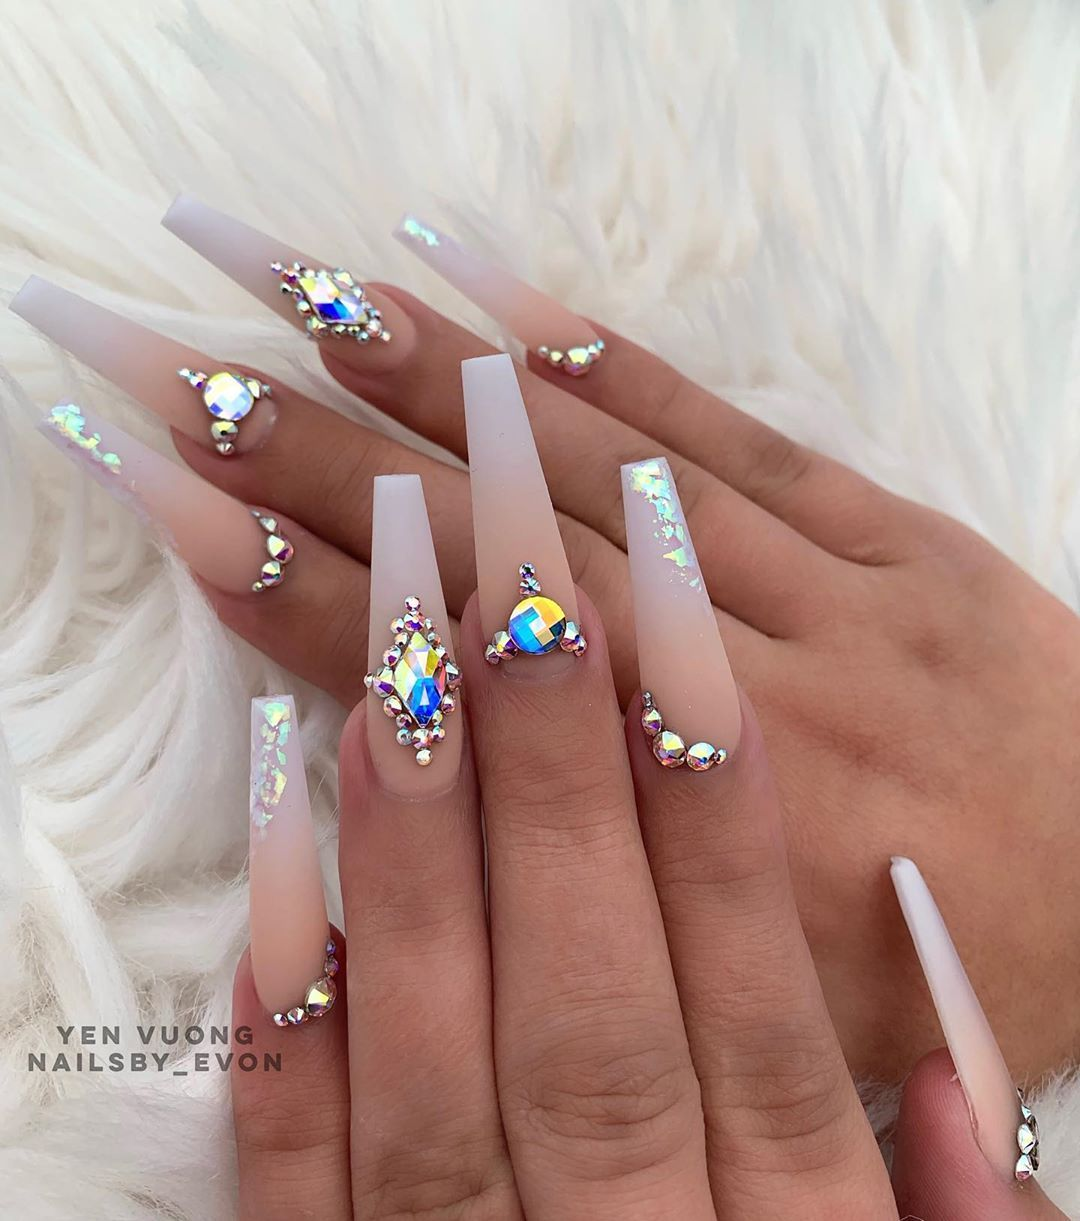 3 834 Likes 22 Comments Evon Yen Vuong Nailsby Evon On Instagram When You Think One Door Is Clos In 2020 Coffin Nails Designs Coffin Shape Nails Gorgeous Nails